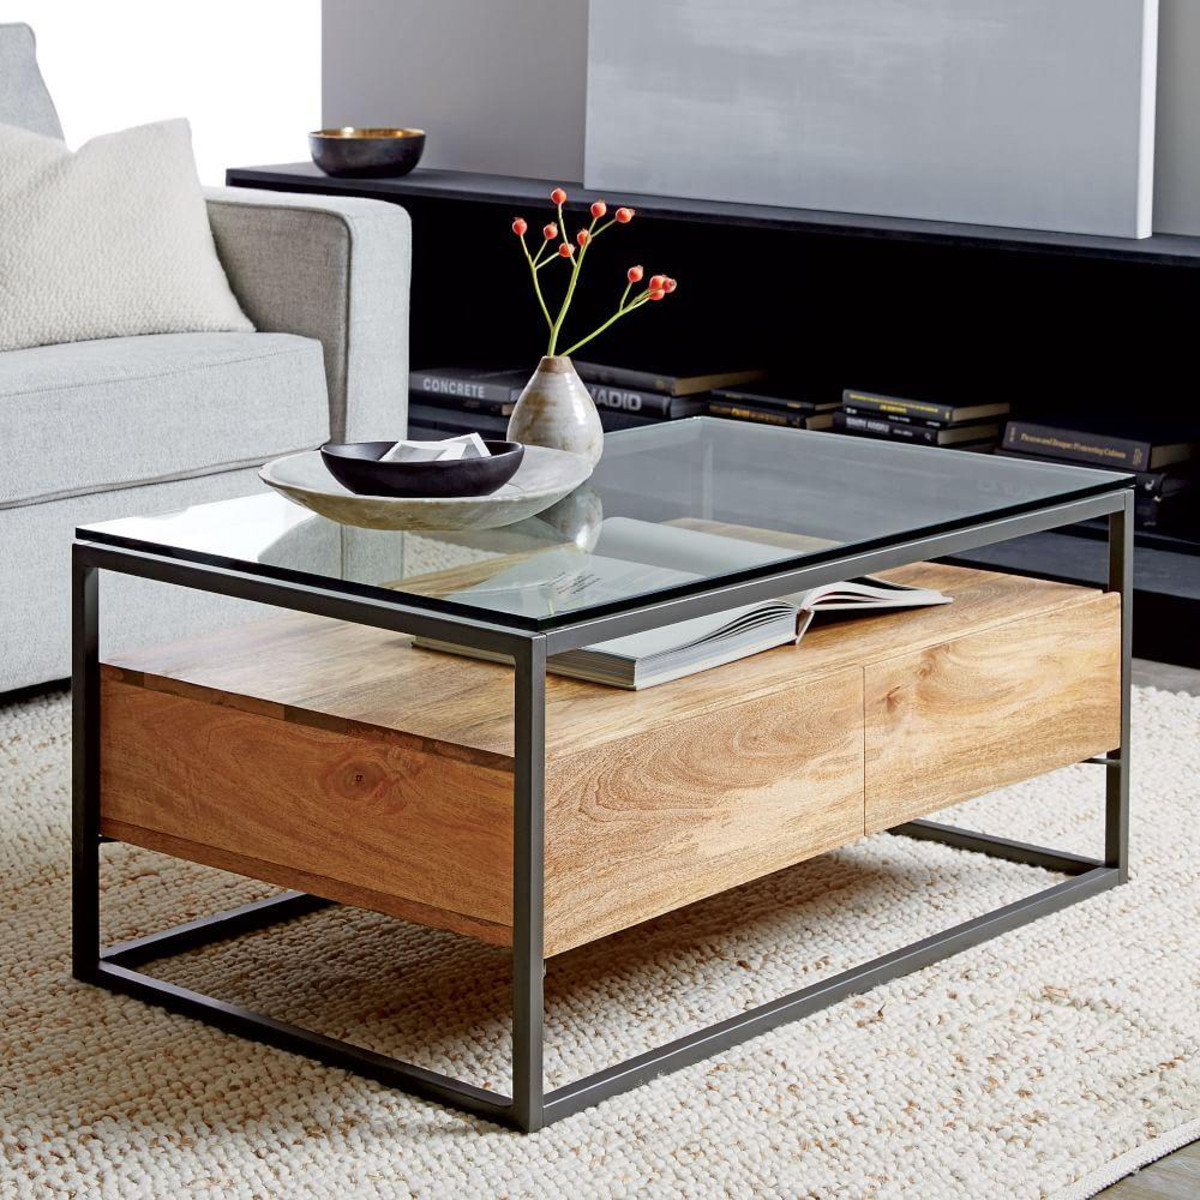 Best ideas about Coffee Tables With Storage . Save or Pin Box Frame Storage Coffee Table Now.